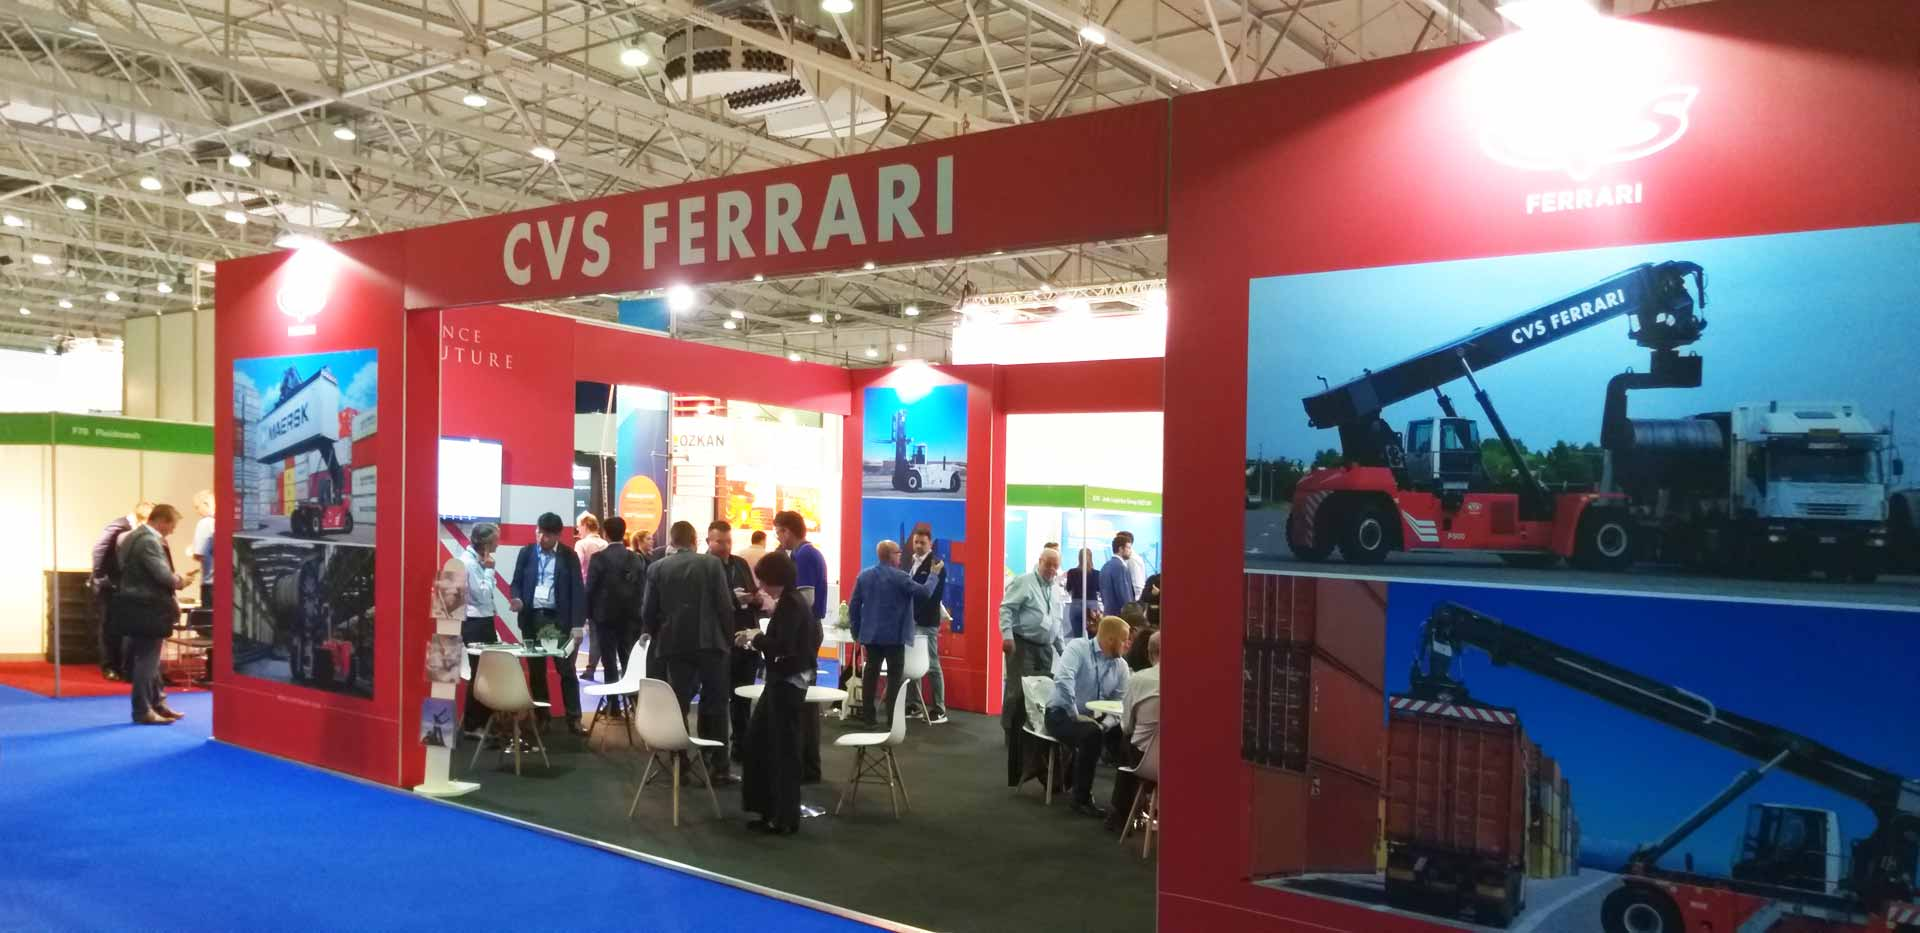 CVS ferrari - live from TOC europe 2019